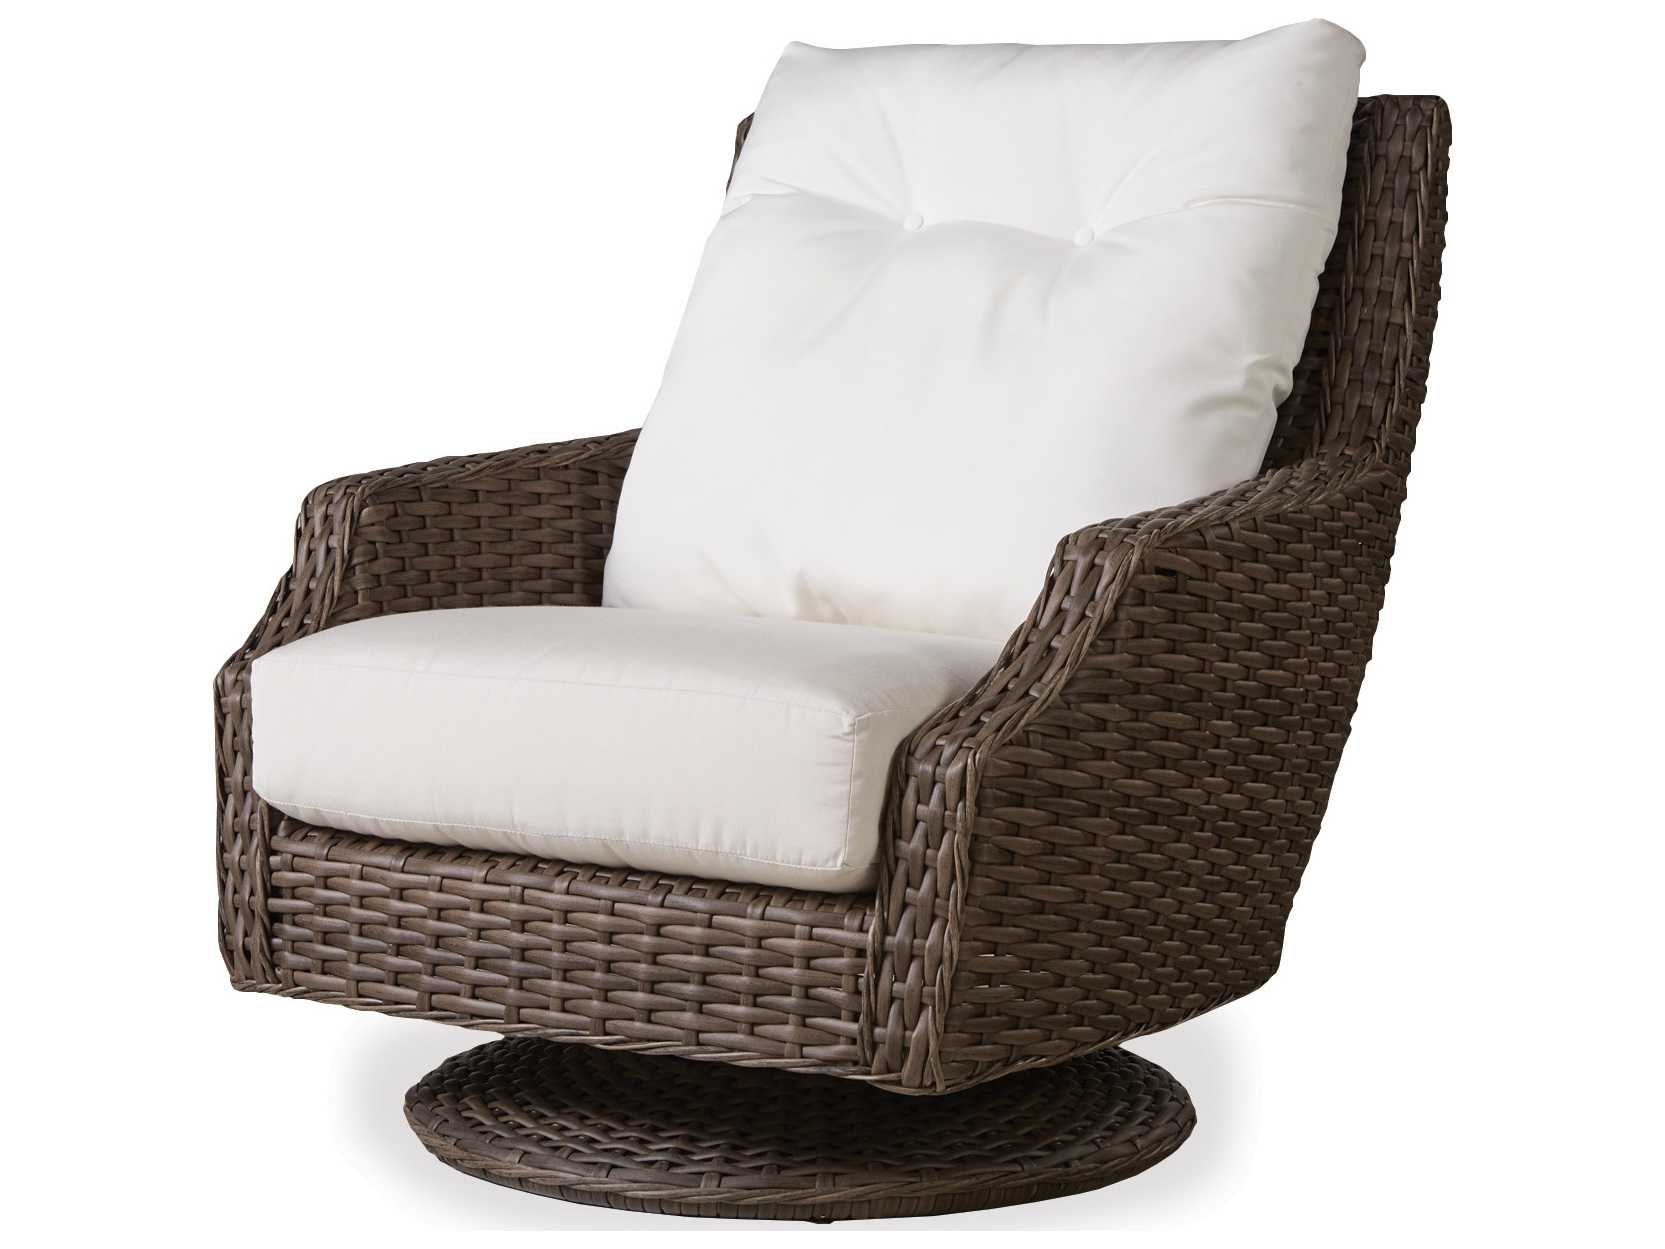 48 high back outdoor chair cushions jazzy power weight lloyd flanders largo replacement swivel rocker